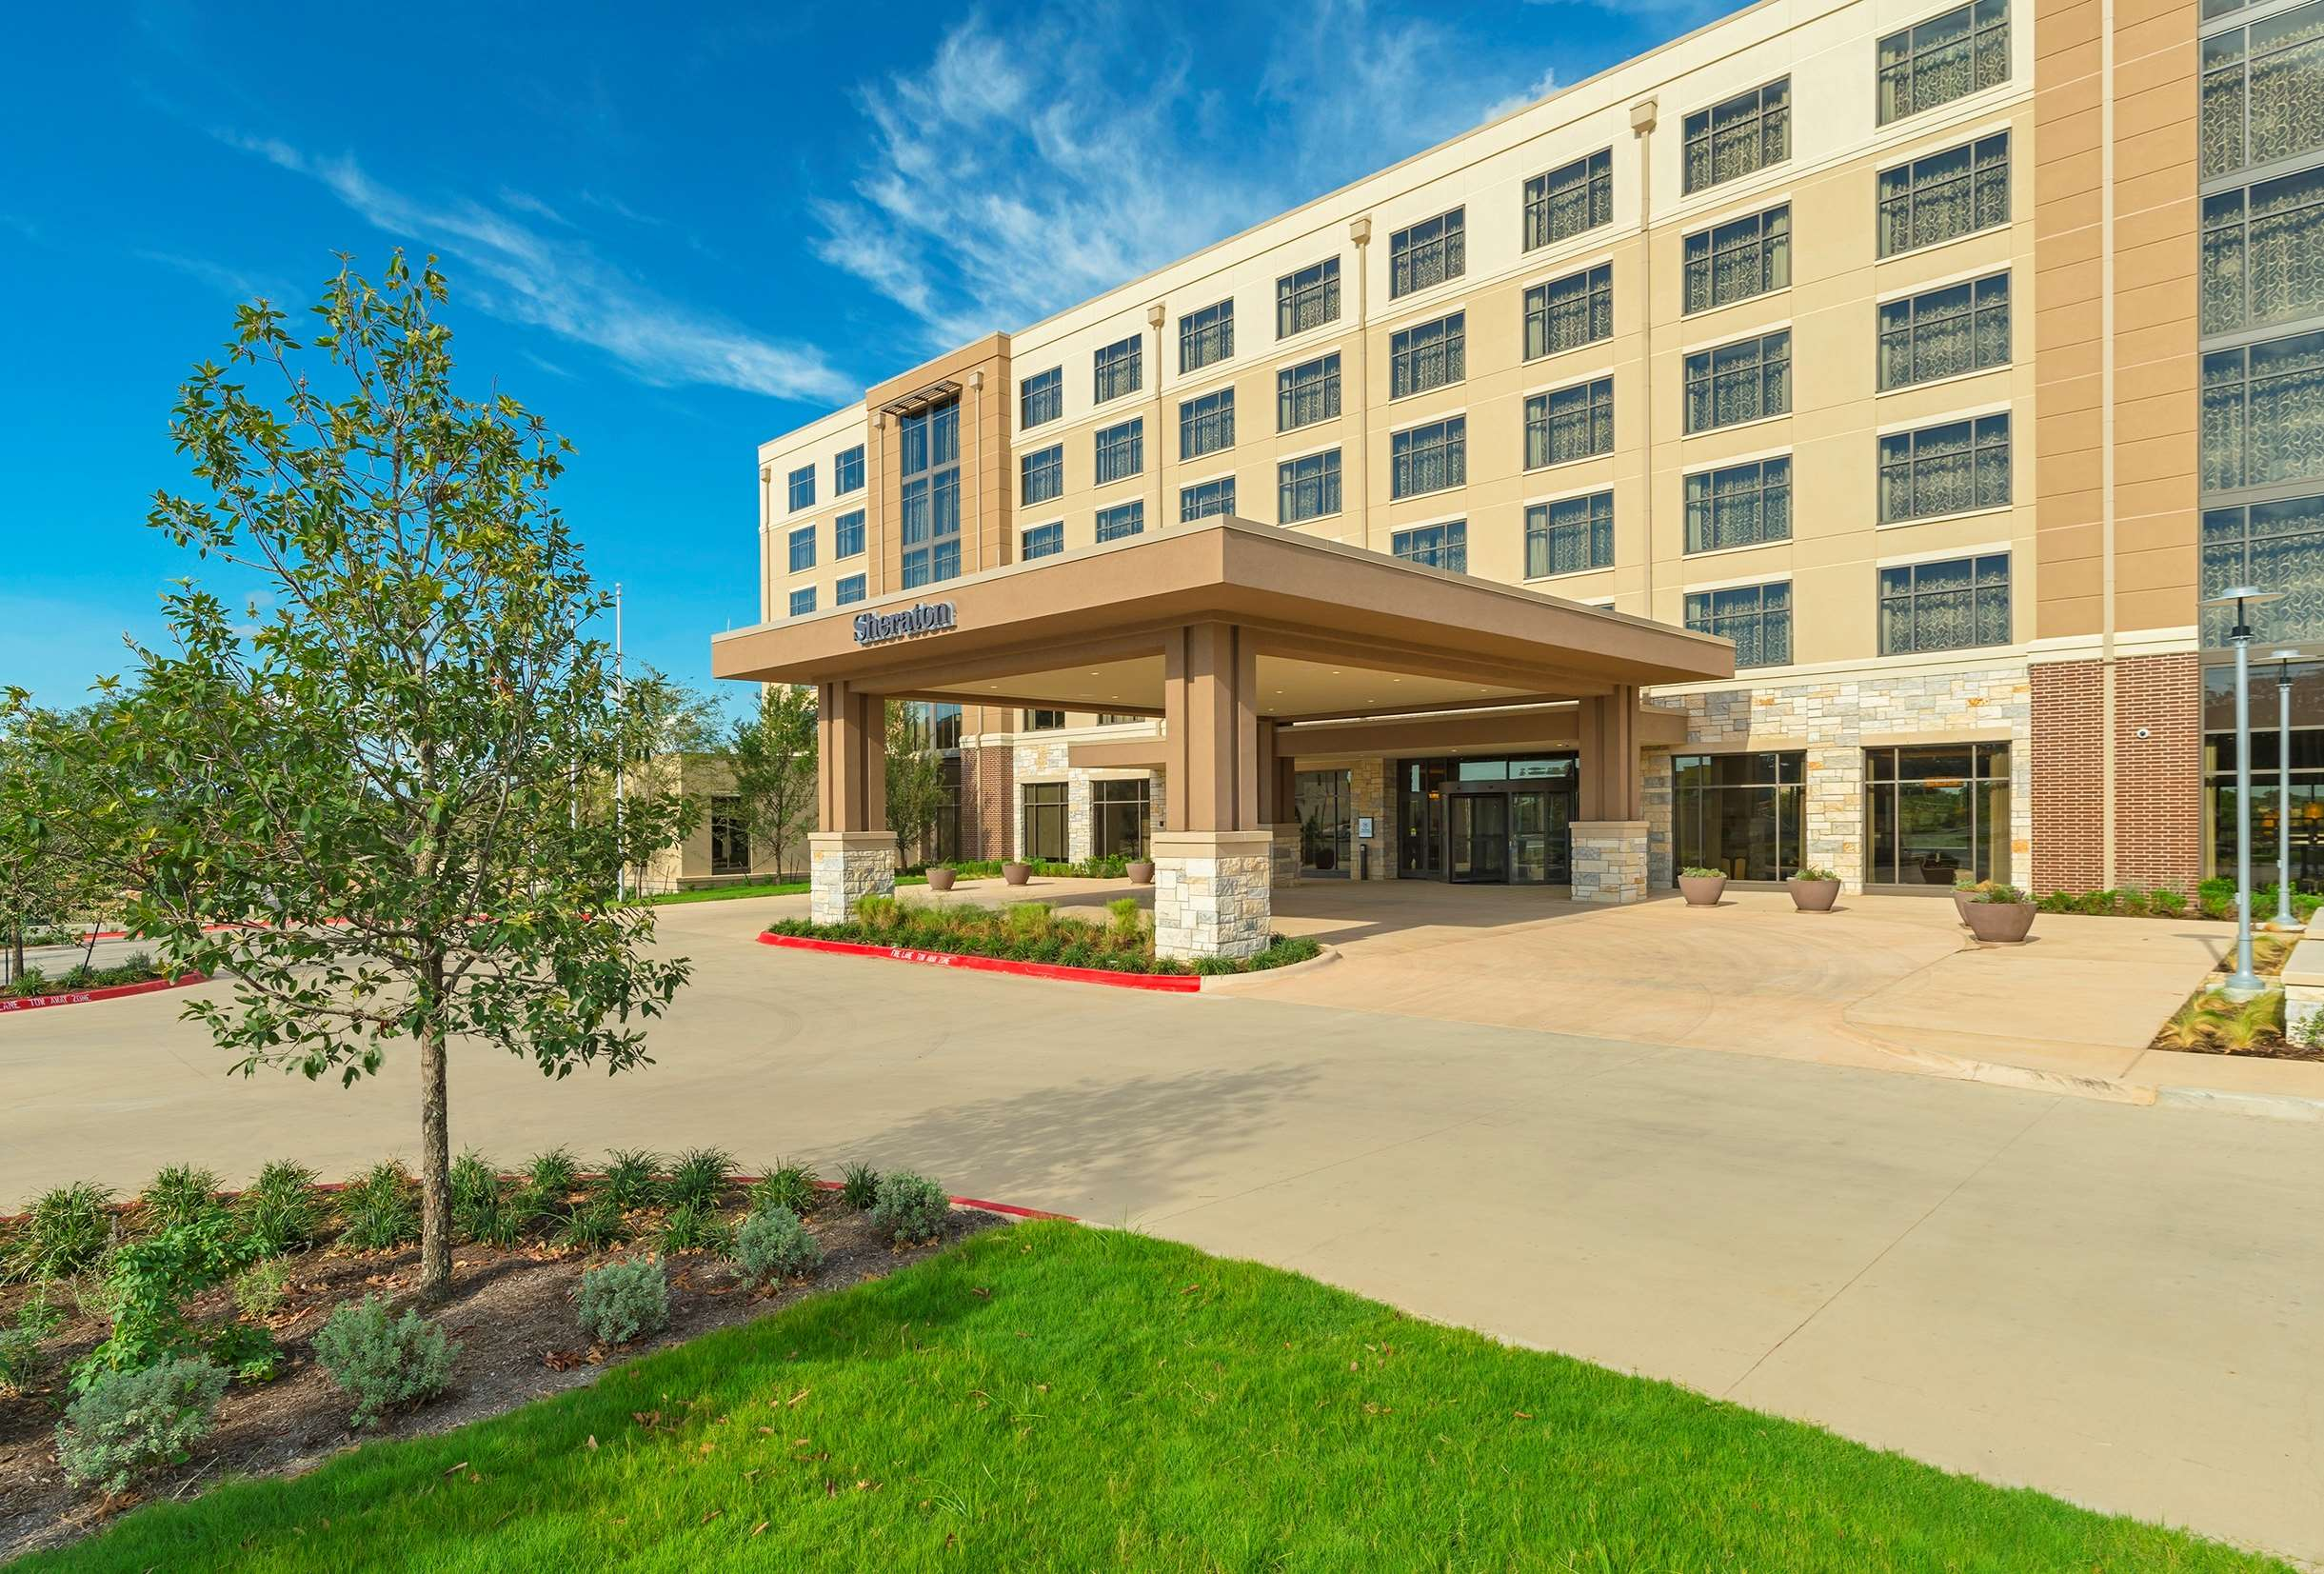 Sheraton Austin Georgetown Hotel & Conference Center image 0